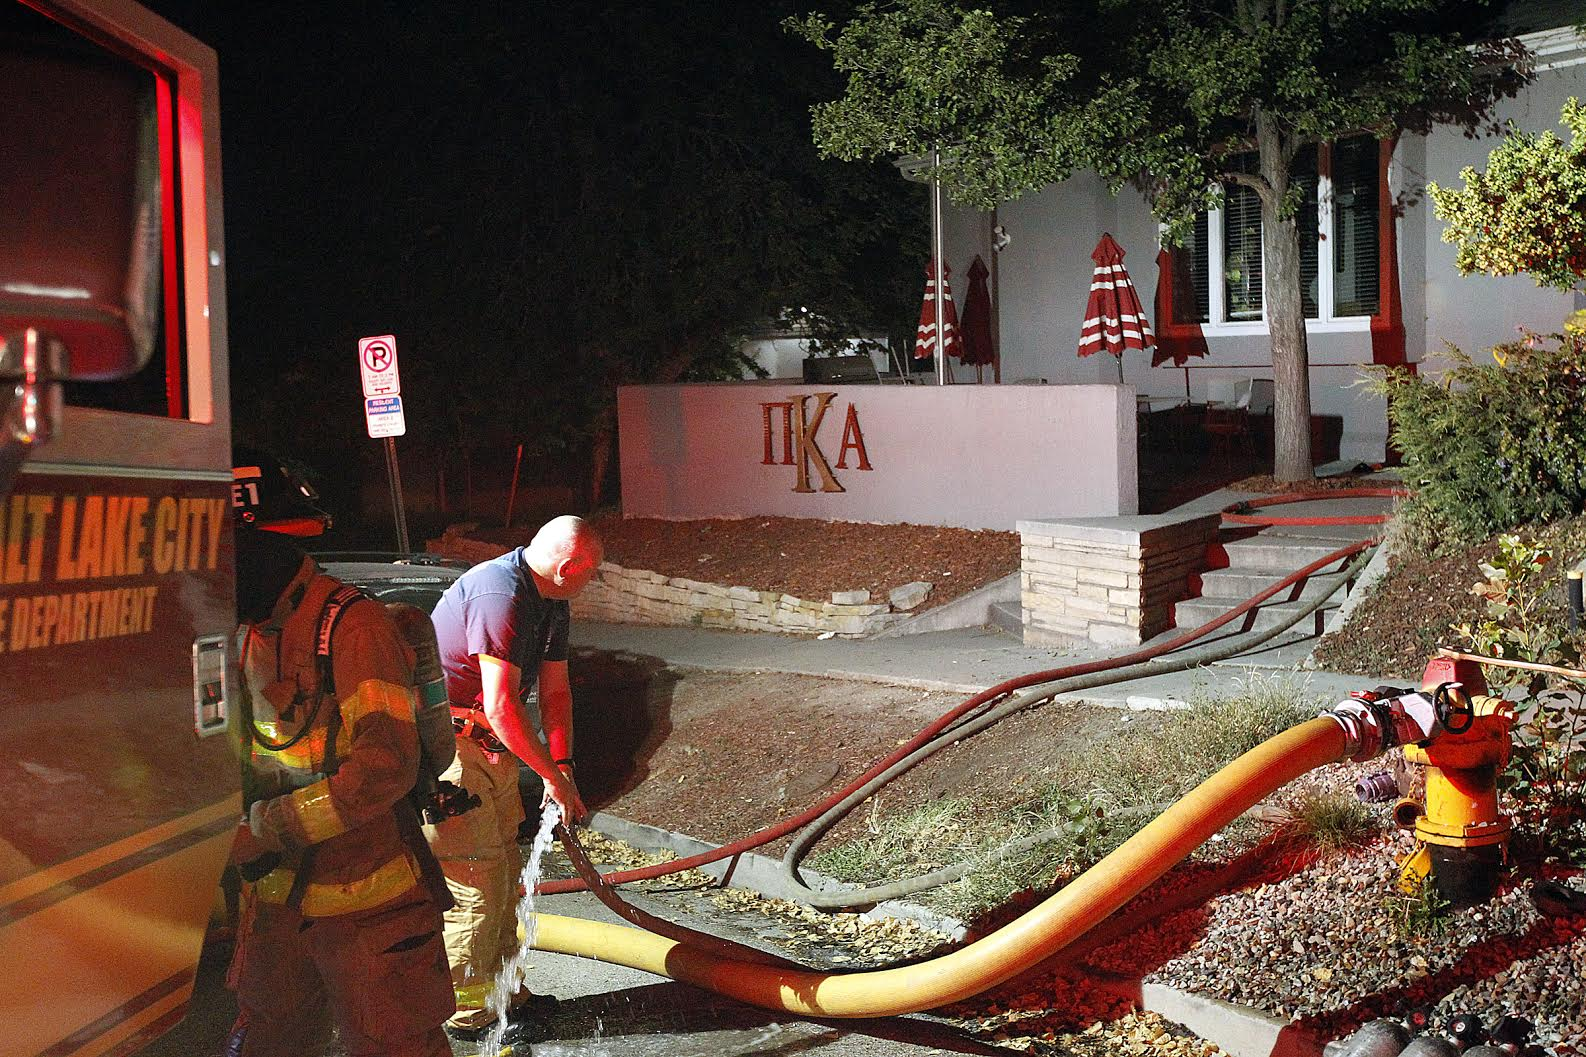 Fire crews respond to a call at the Pi Kappa Alpha fraternity house at the University of Utah, Friday, July 3, 2015. Fires were reported at two fraternity houses early morning Friday.